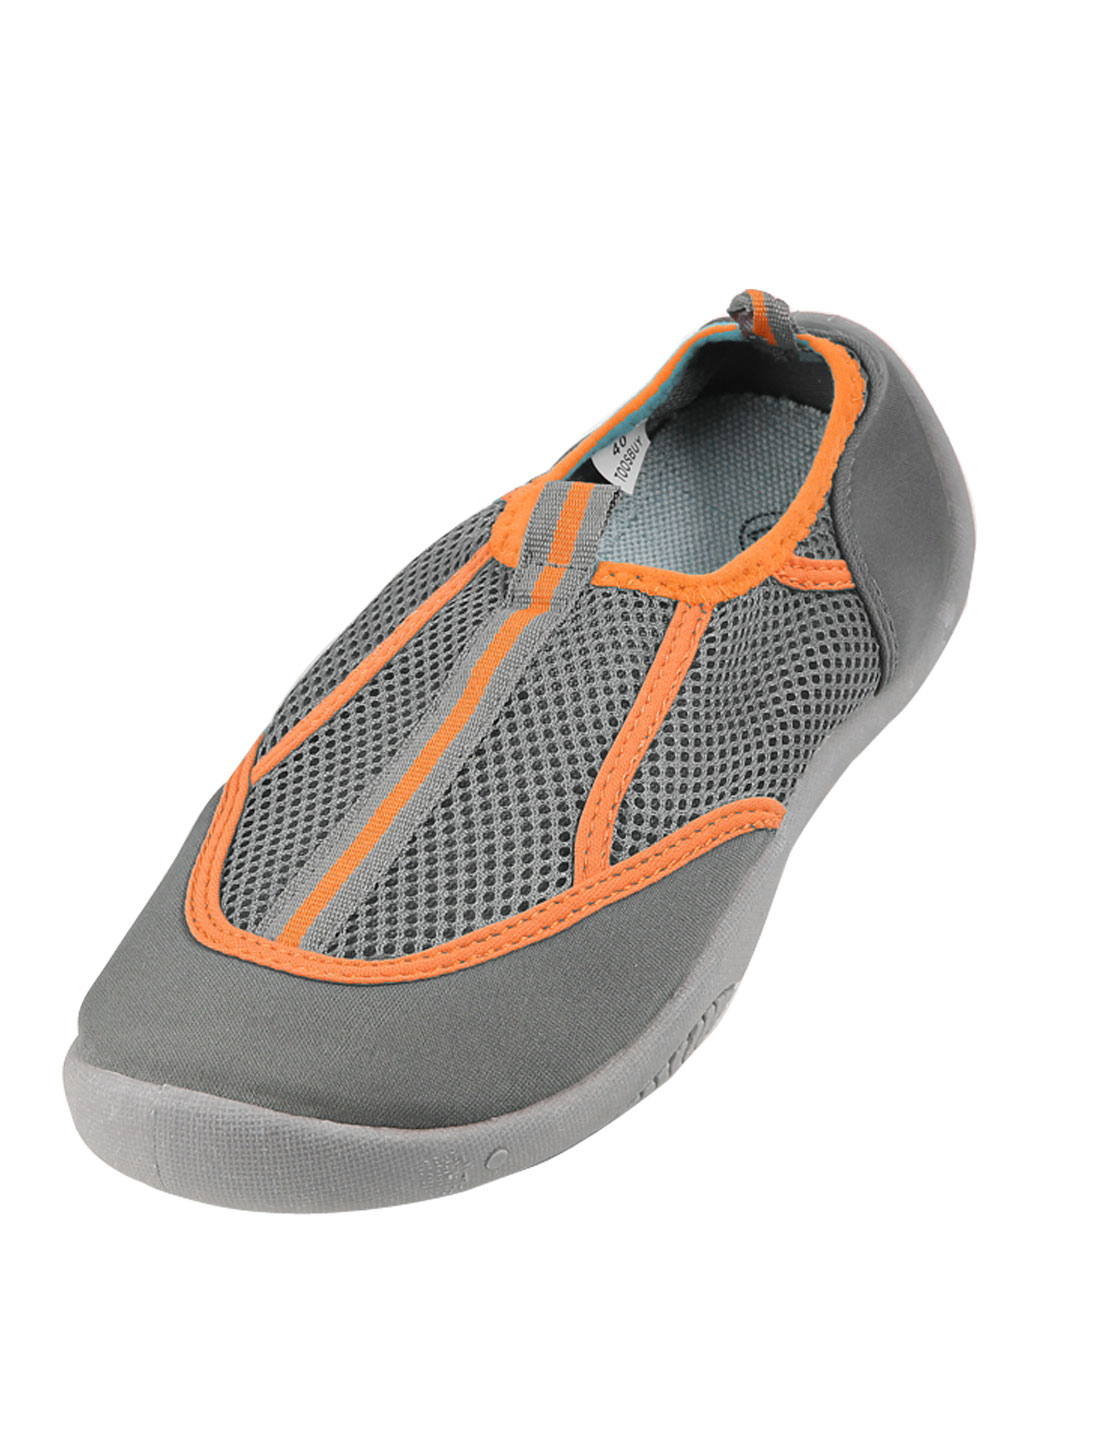 Gray Orange Round Toe Low Platform Flat Beach Mesh Shoes US 8.5 for Ladies